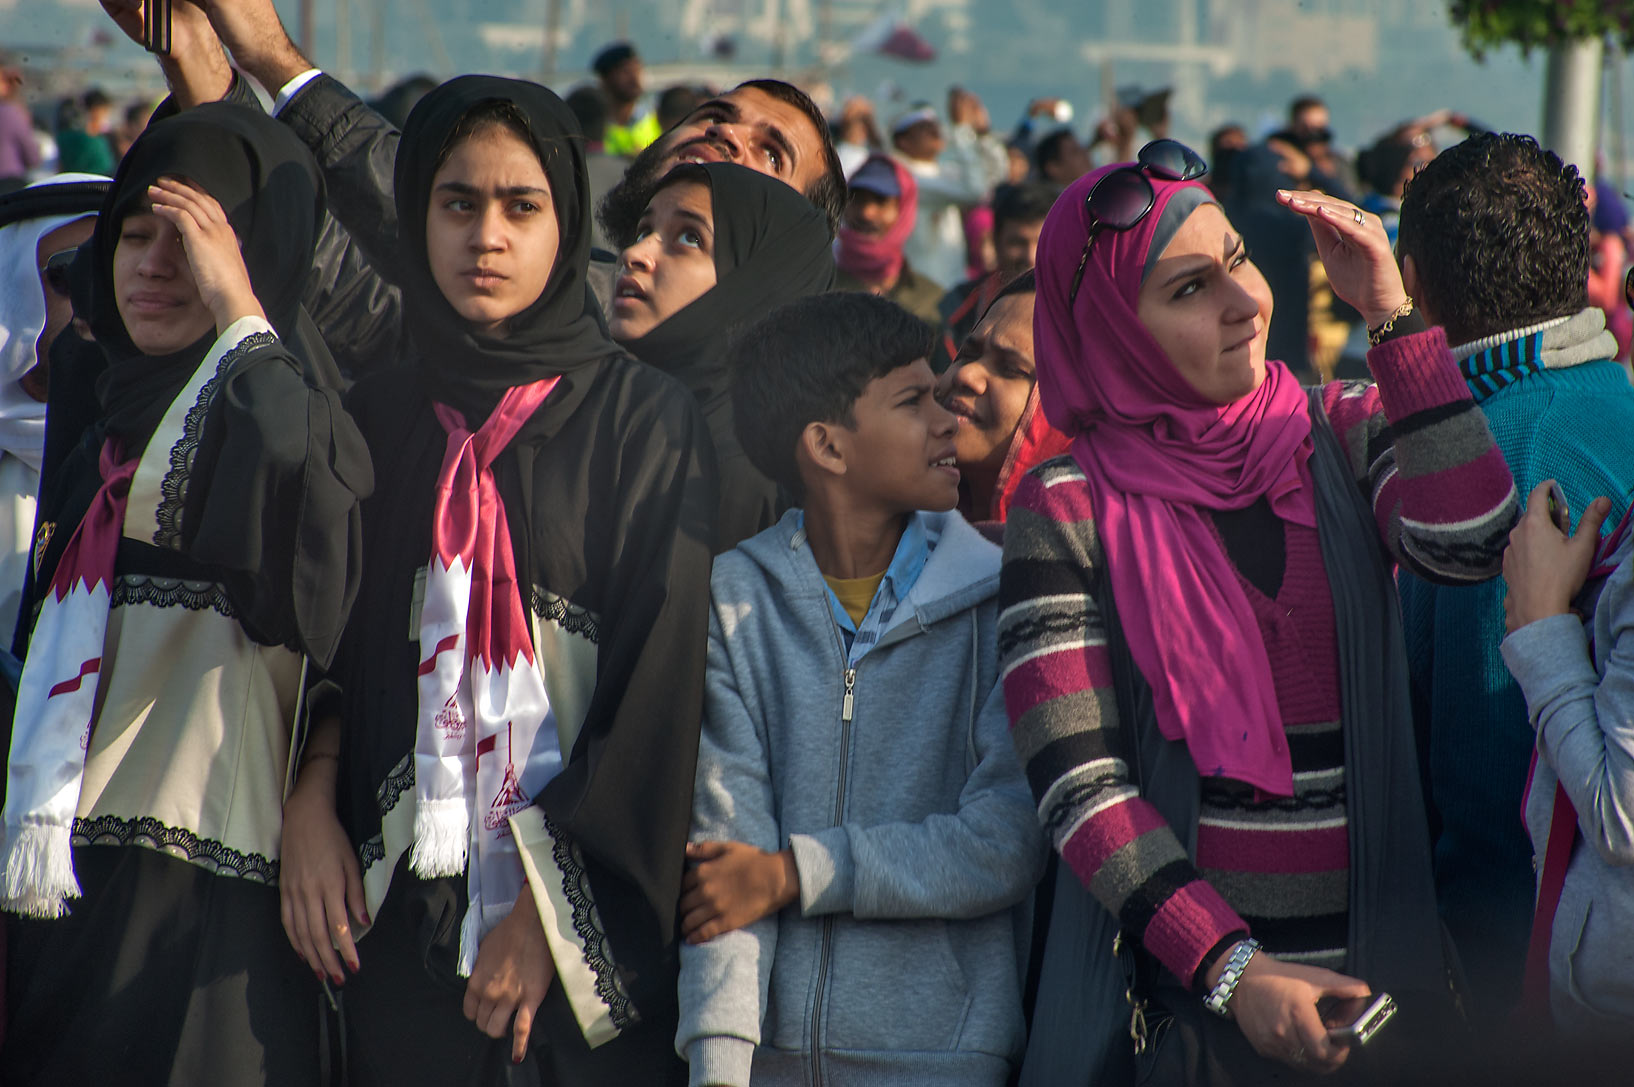 Spectators watching American airplanes and air...Day parade on Corniche. Doha, Qatar